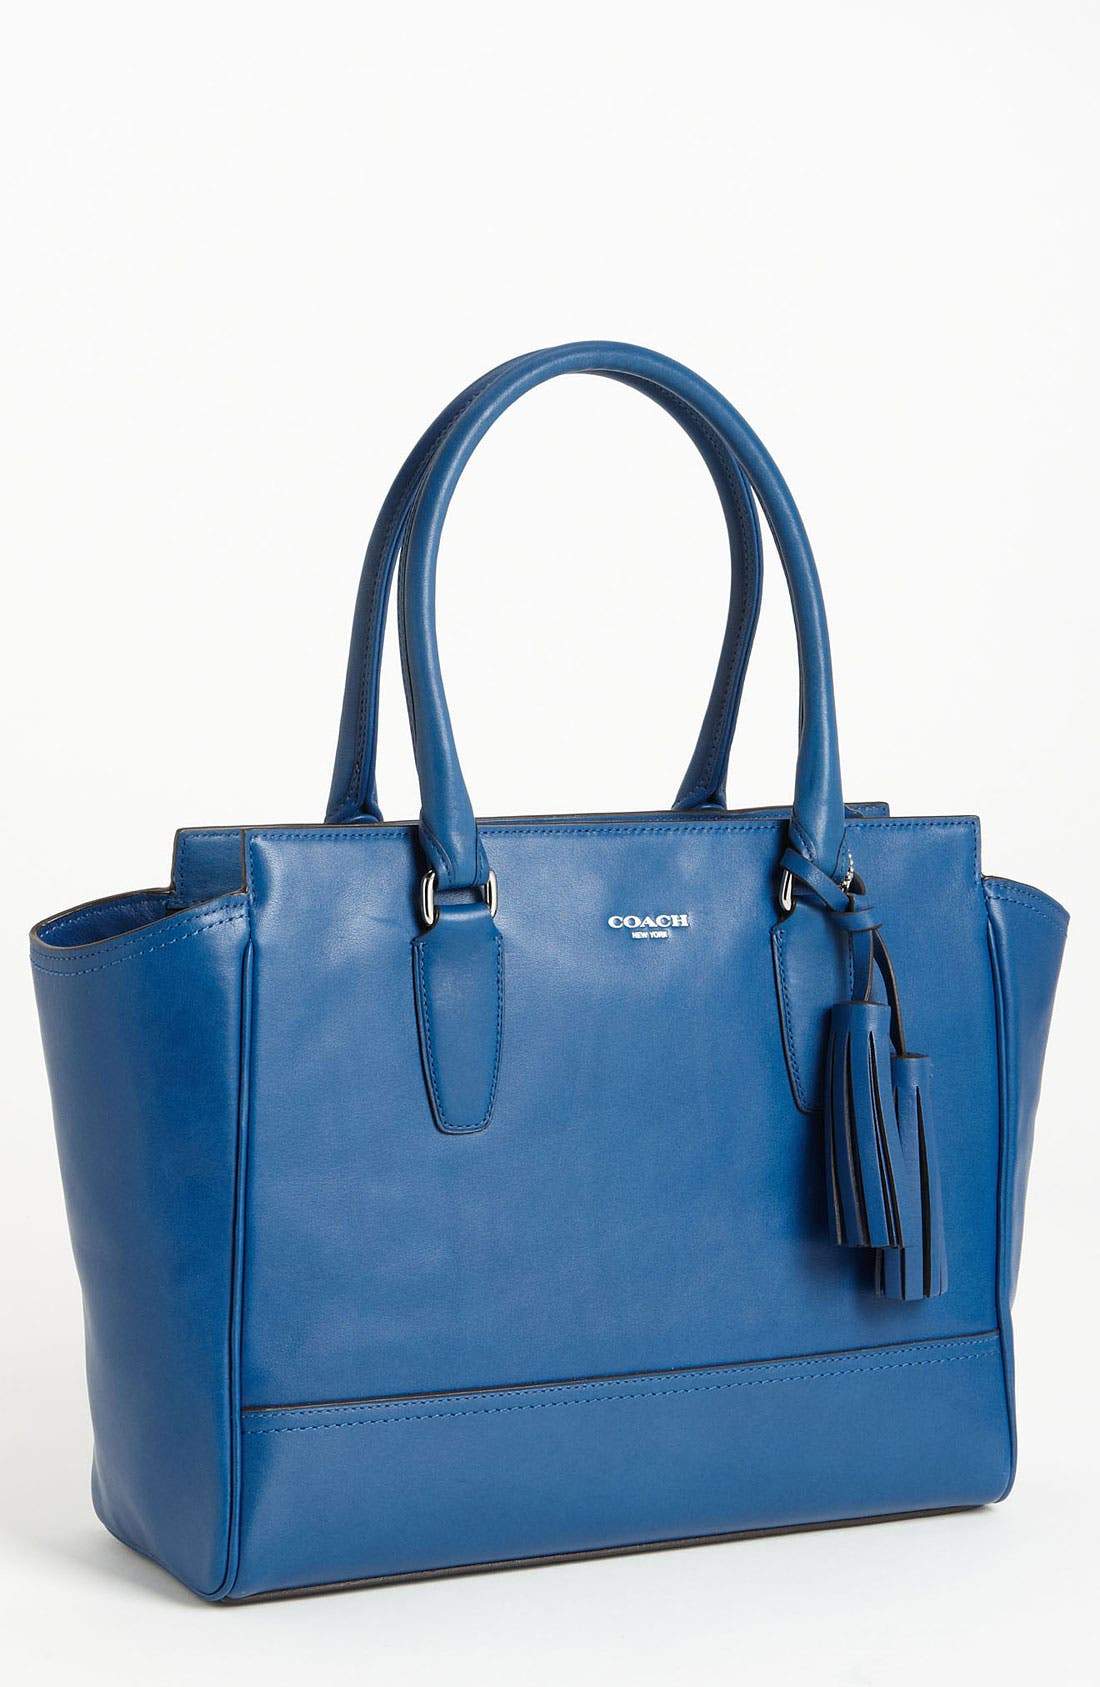 Main Image - COACH 'Legacy - Medium' Leather Carryall